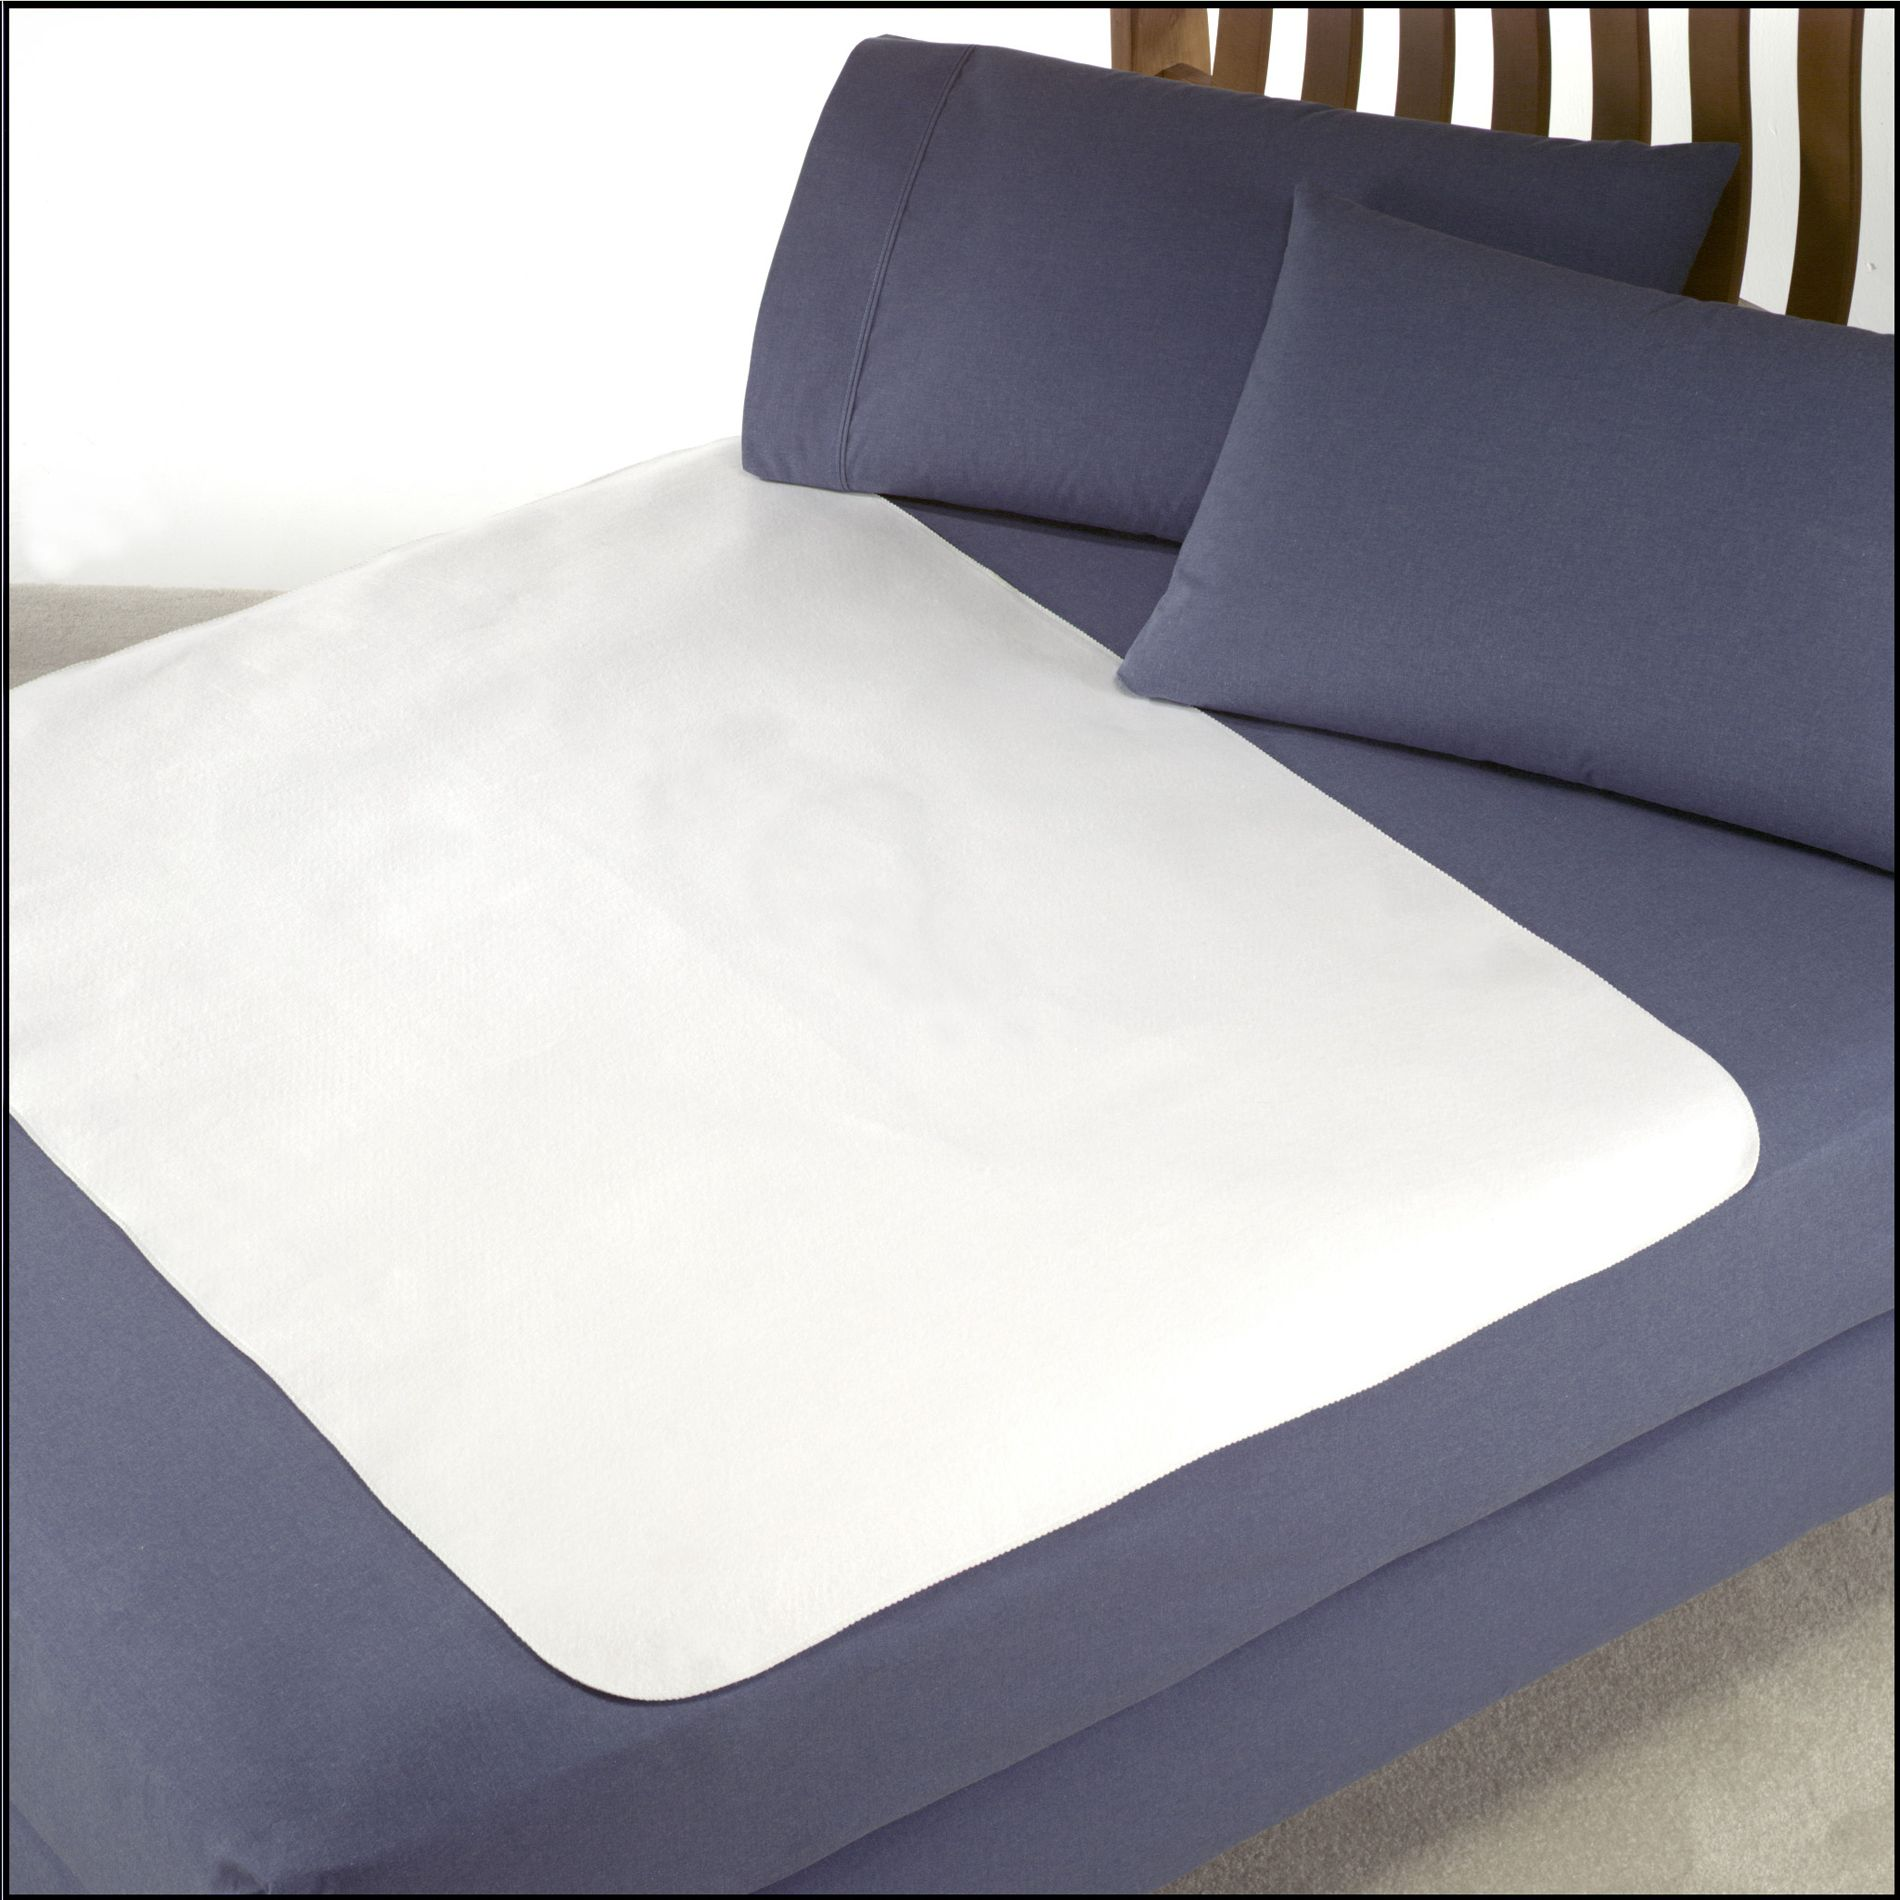 Cannon  Waterproof Underpad Mattress Pad